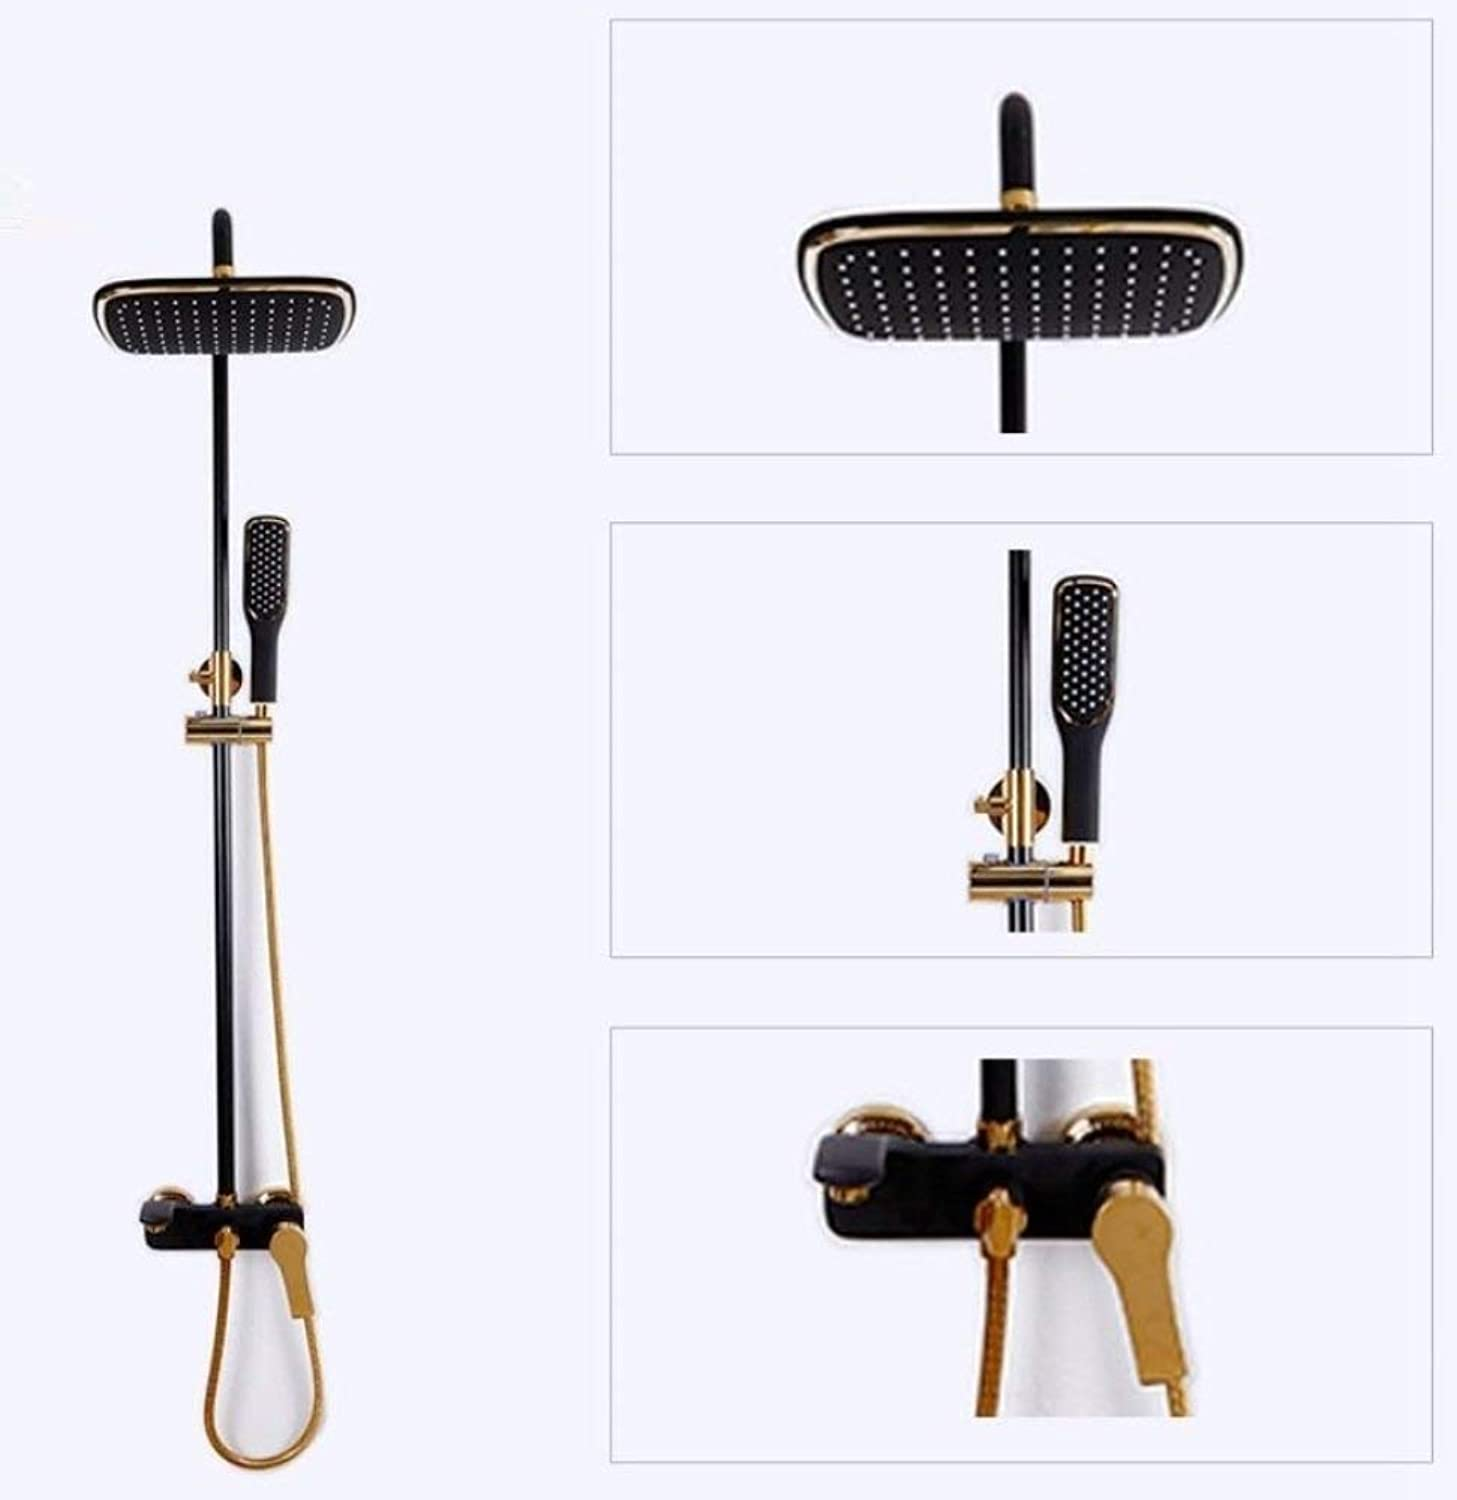 The Luxury Bathroom Full of Black Copper rain Shower Mixer Combo Set Inssizetion Wall of rain Shower Head System, Multi-Functional Adaptation Faucet Shower